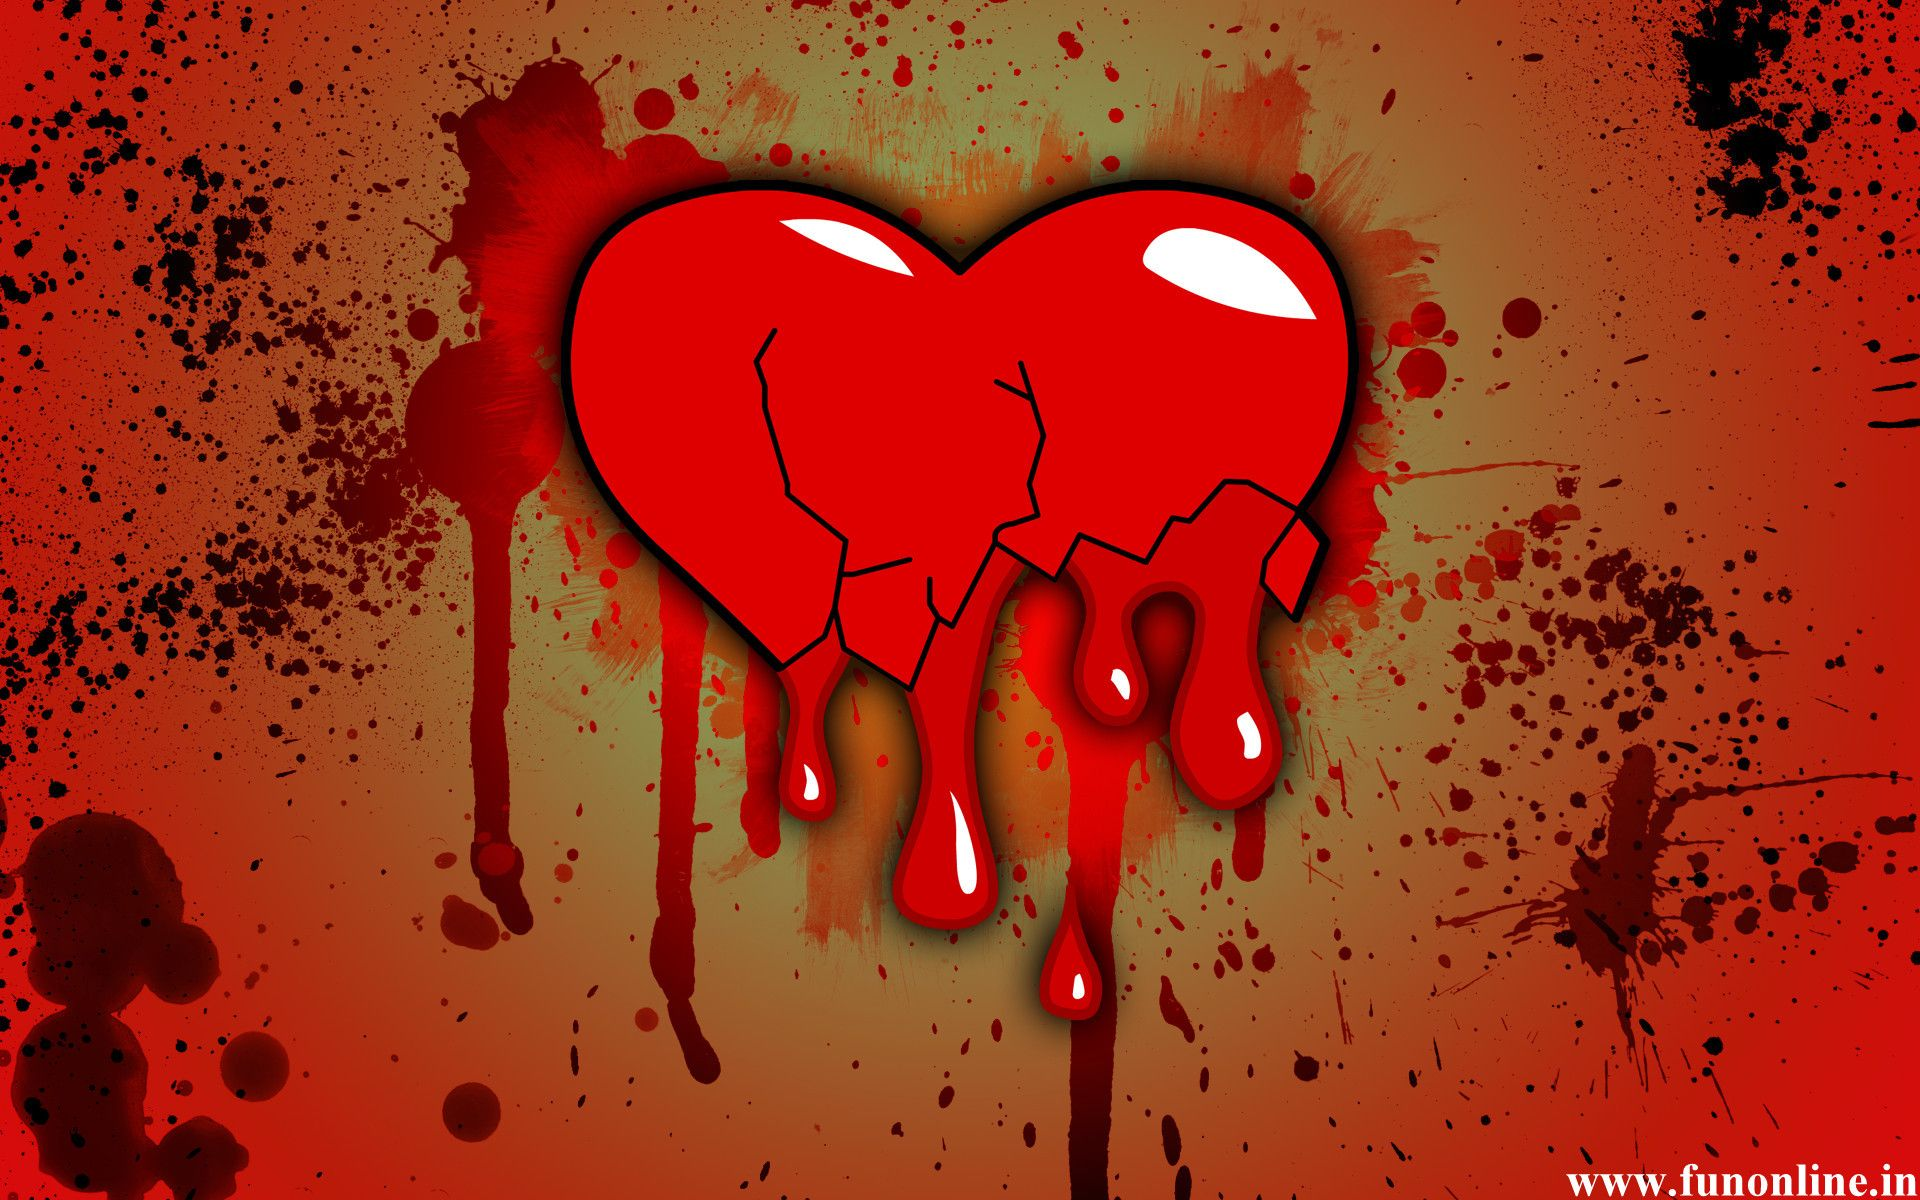 Broken Heart Quotes Wallpapers HD Backgrounds Images Pics 1920x1200 Pic 48